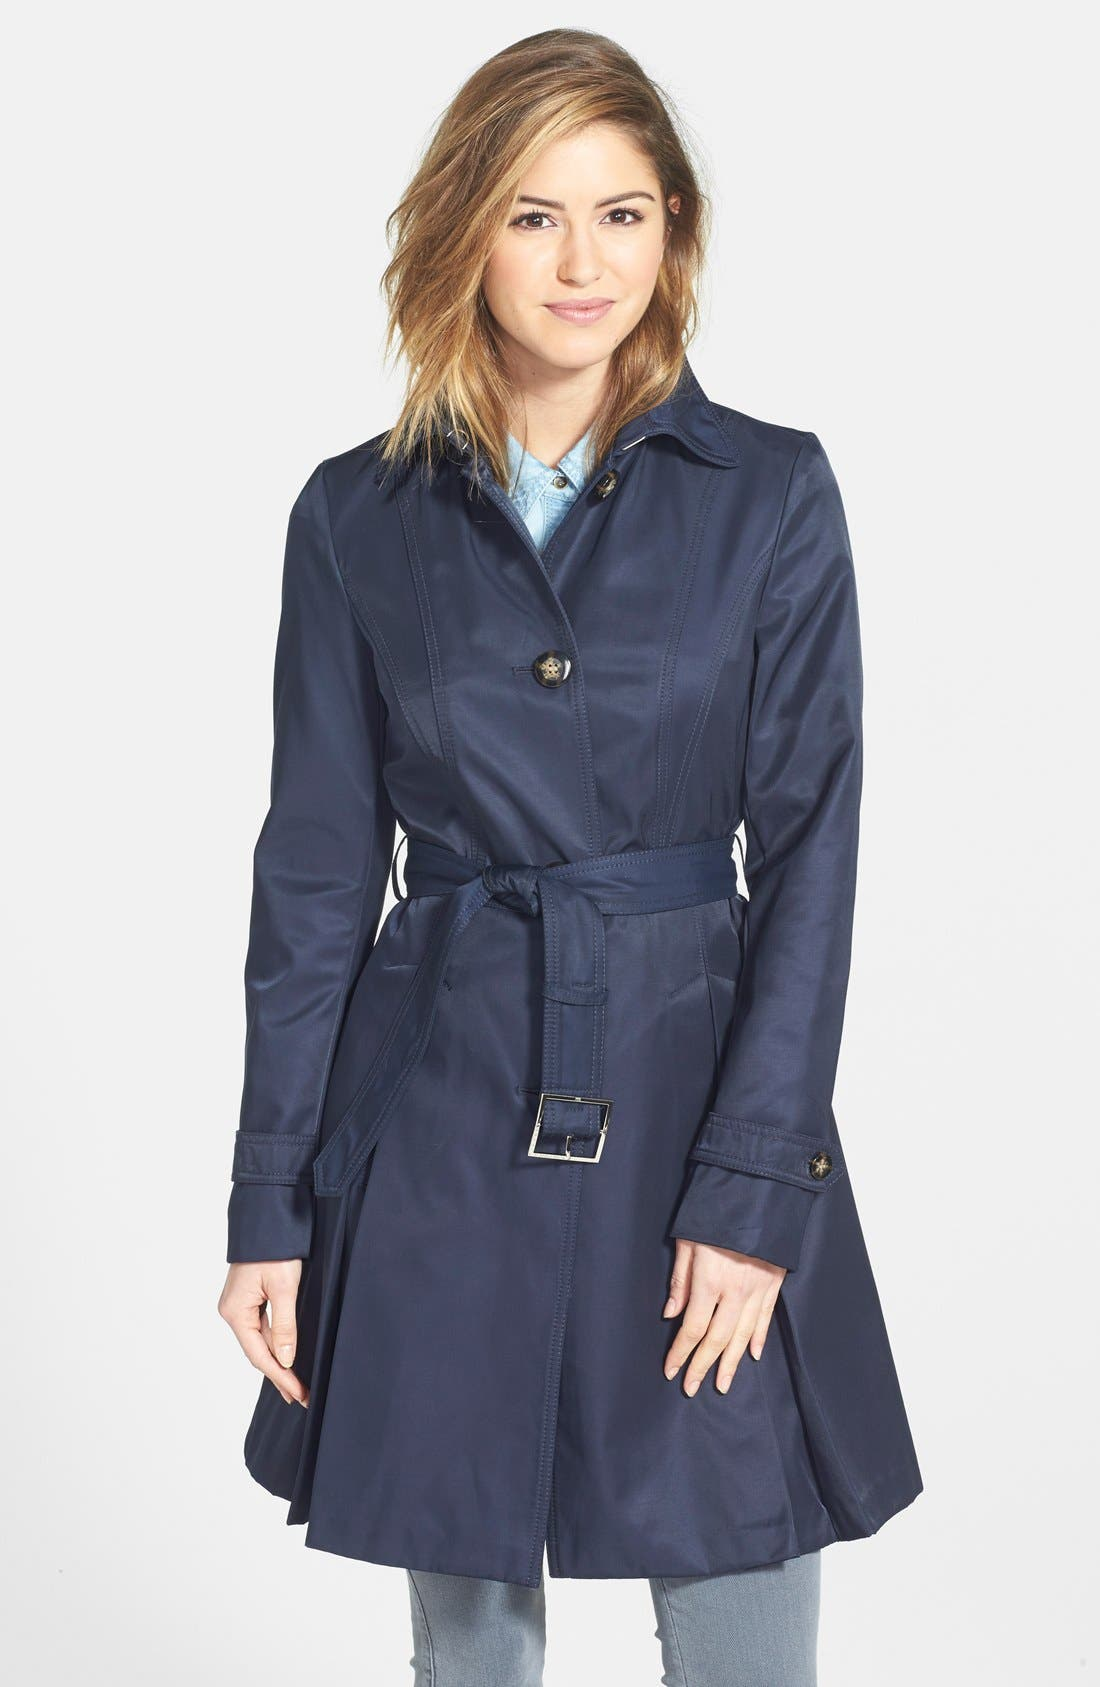 Alternate Image 1 Selected - Laundry by Shelli Segal Skirted Trench Coat